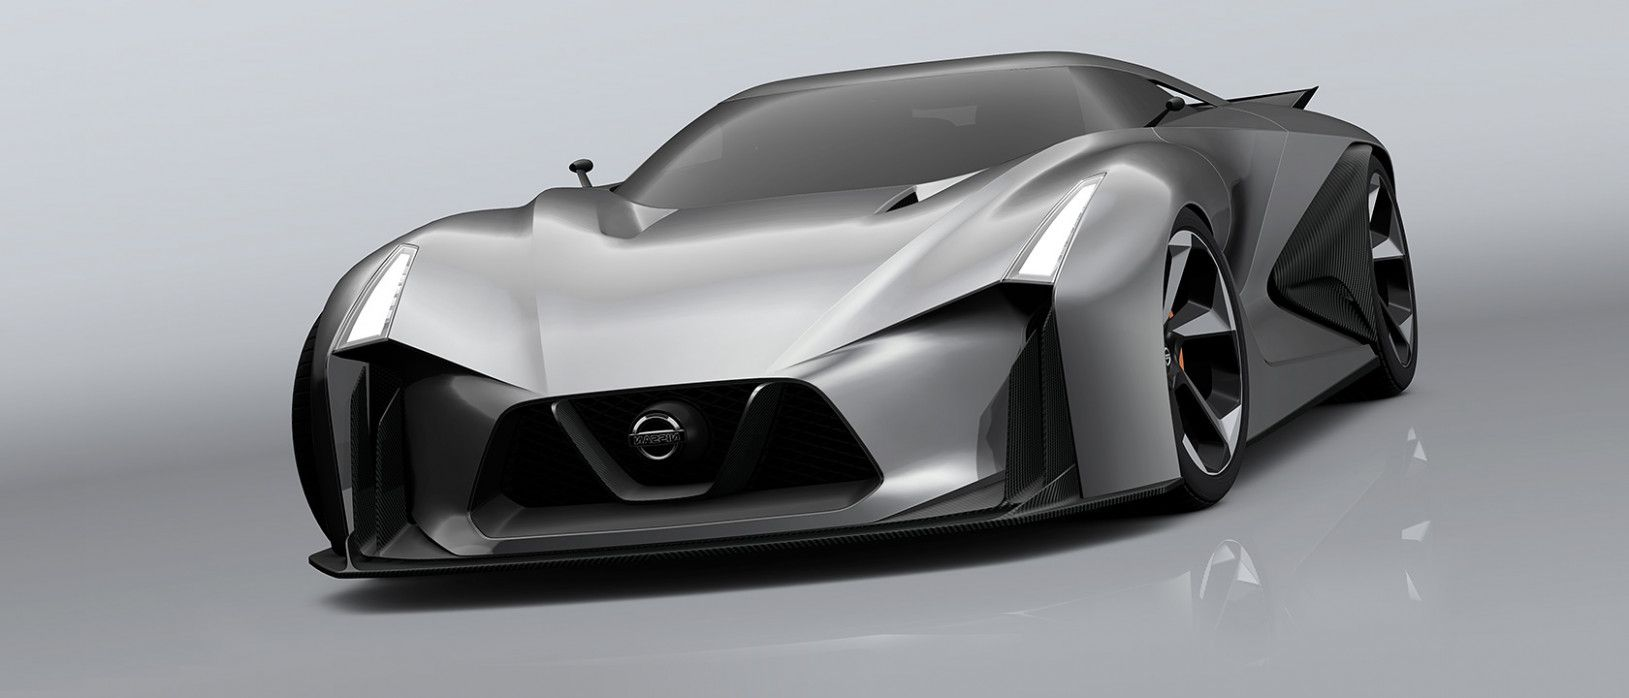 Simple Guidance For You In Nissan Turismo 2020 Nissan Turismo Concept Cars